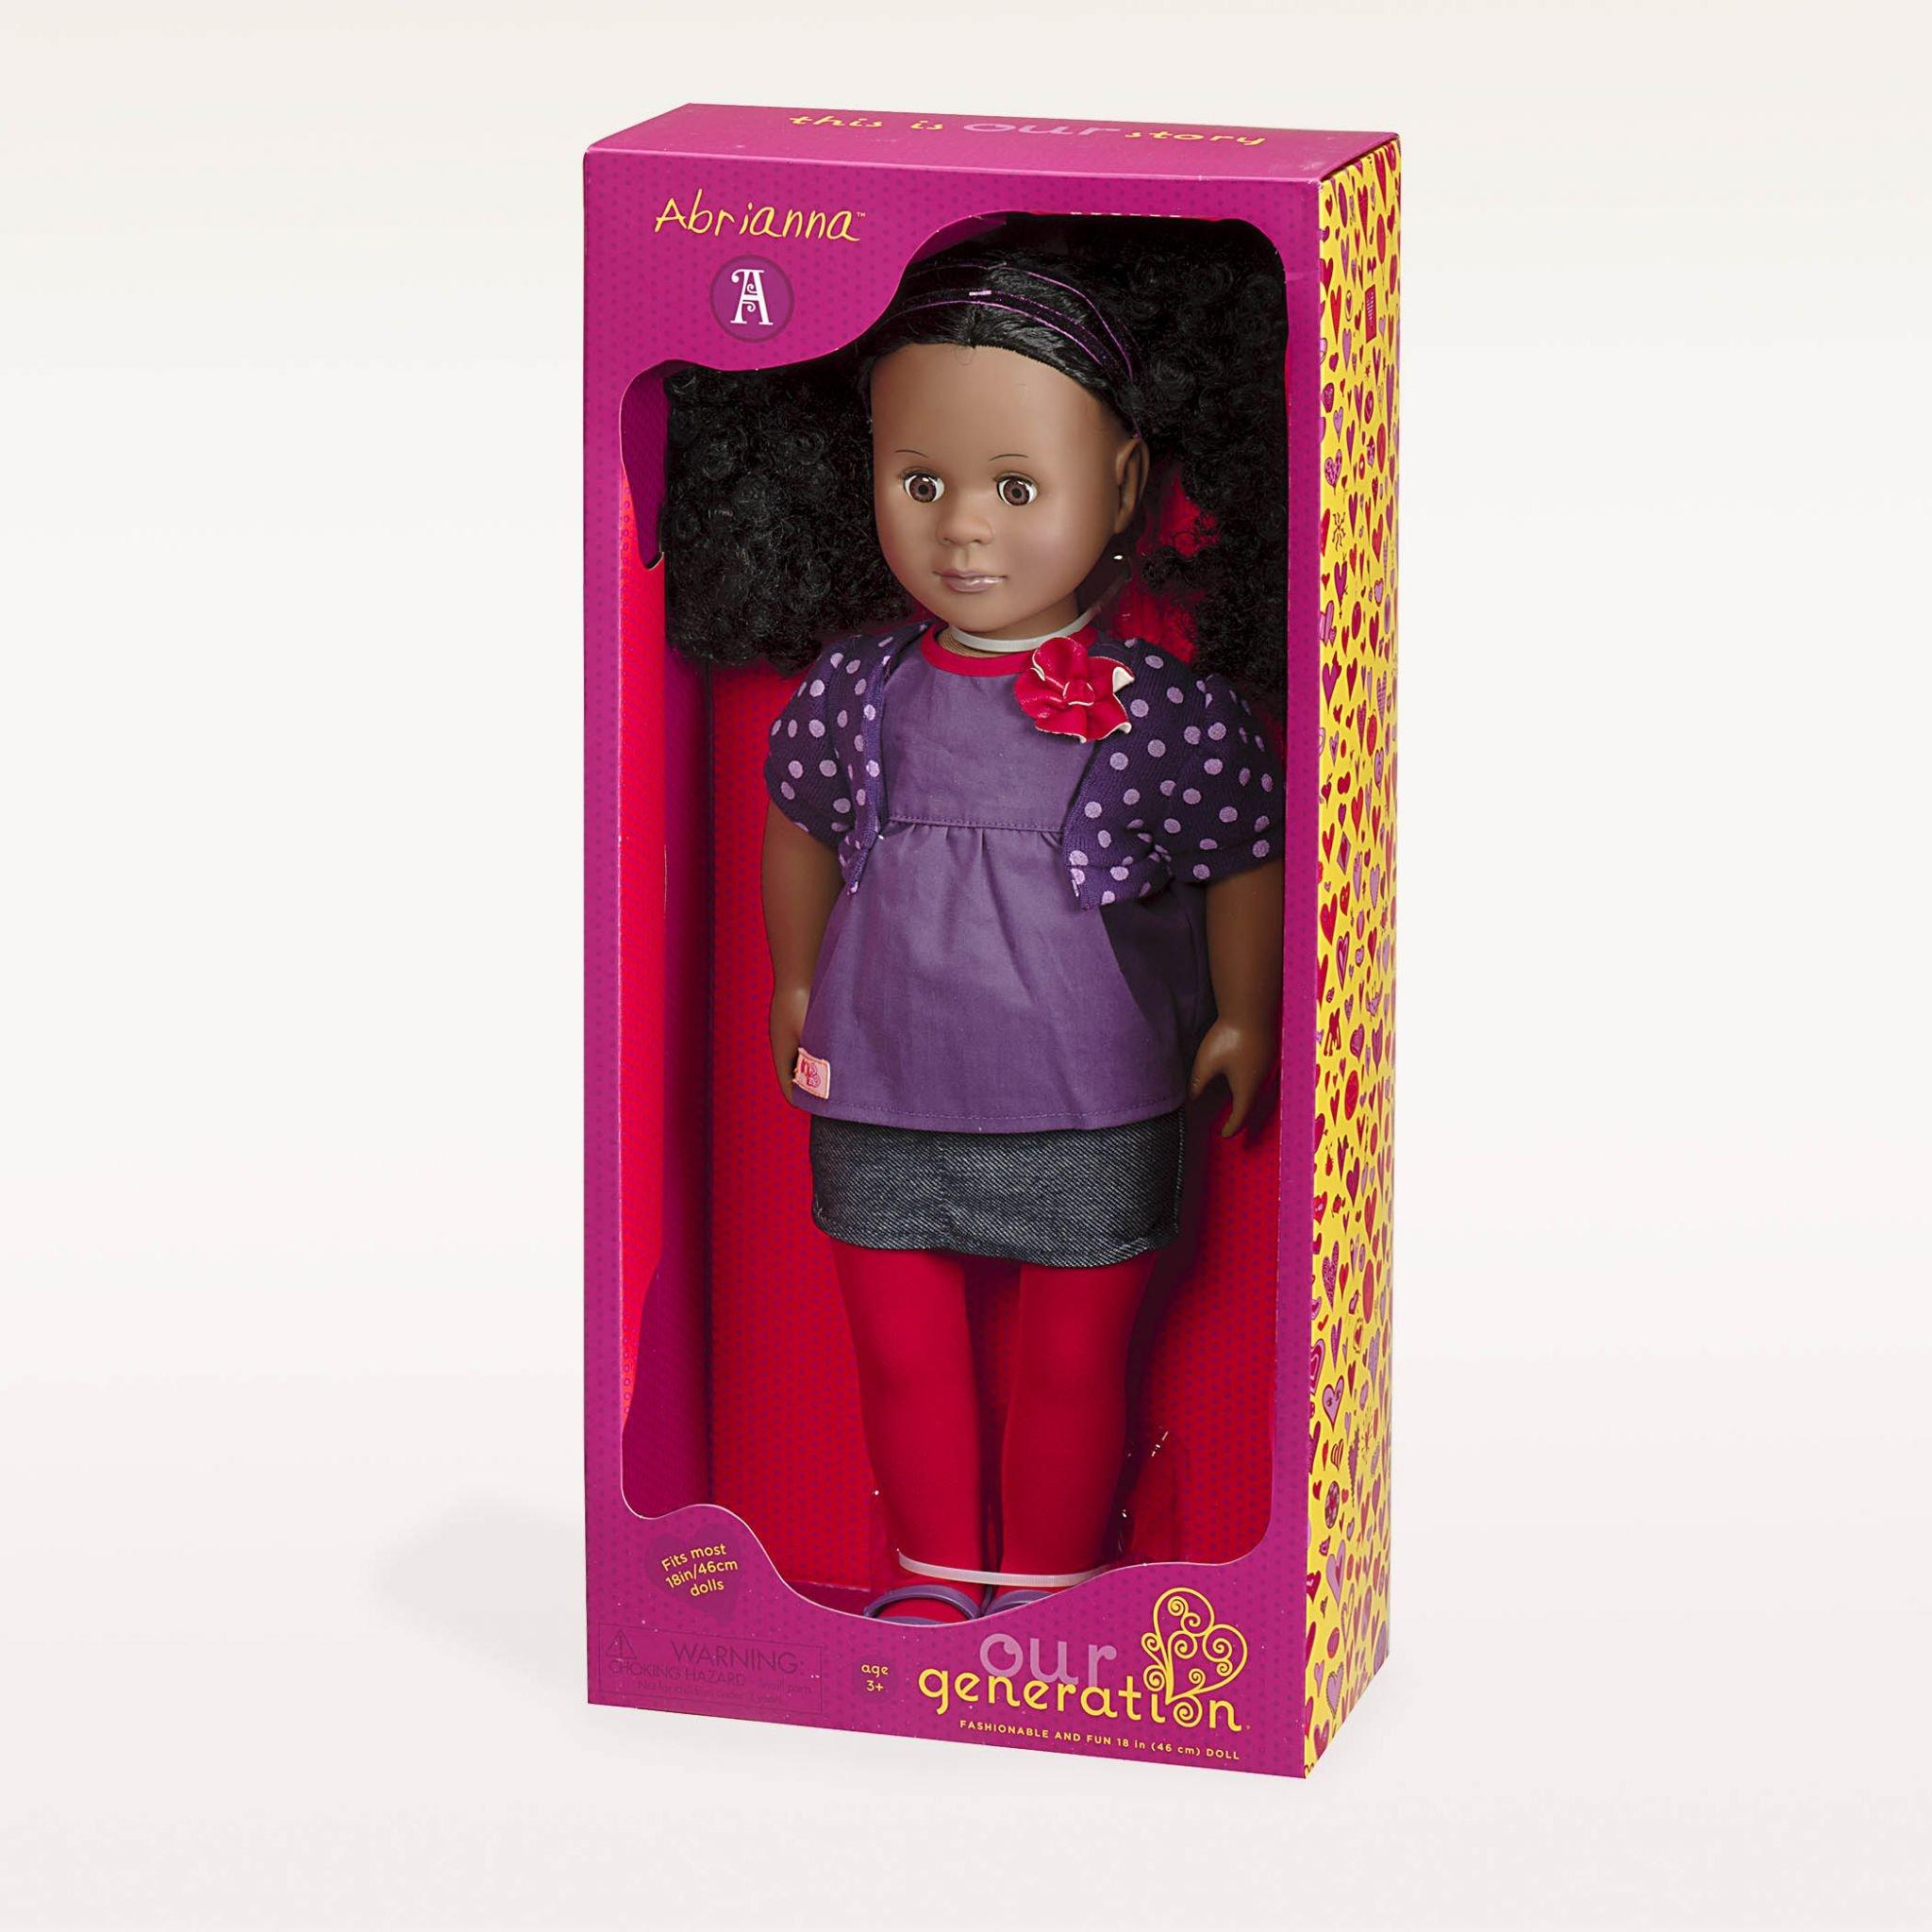 Abrianna our generation ethnic doll in a box